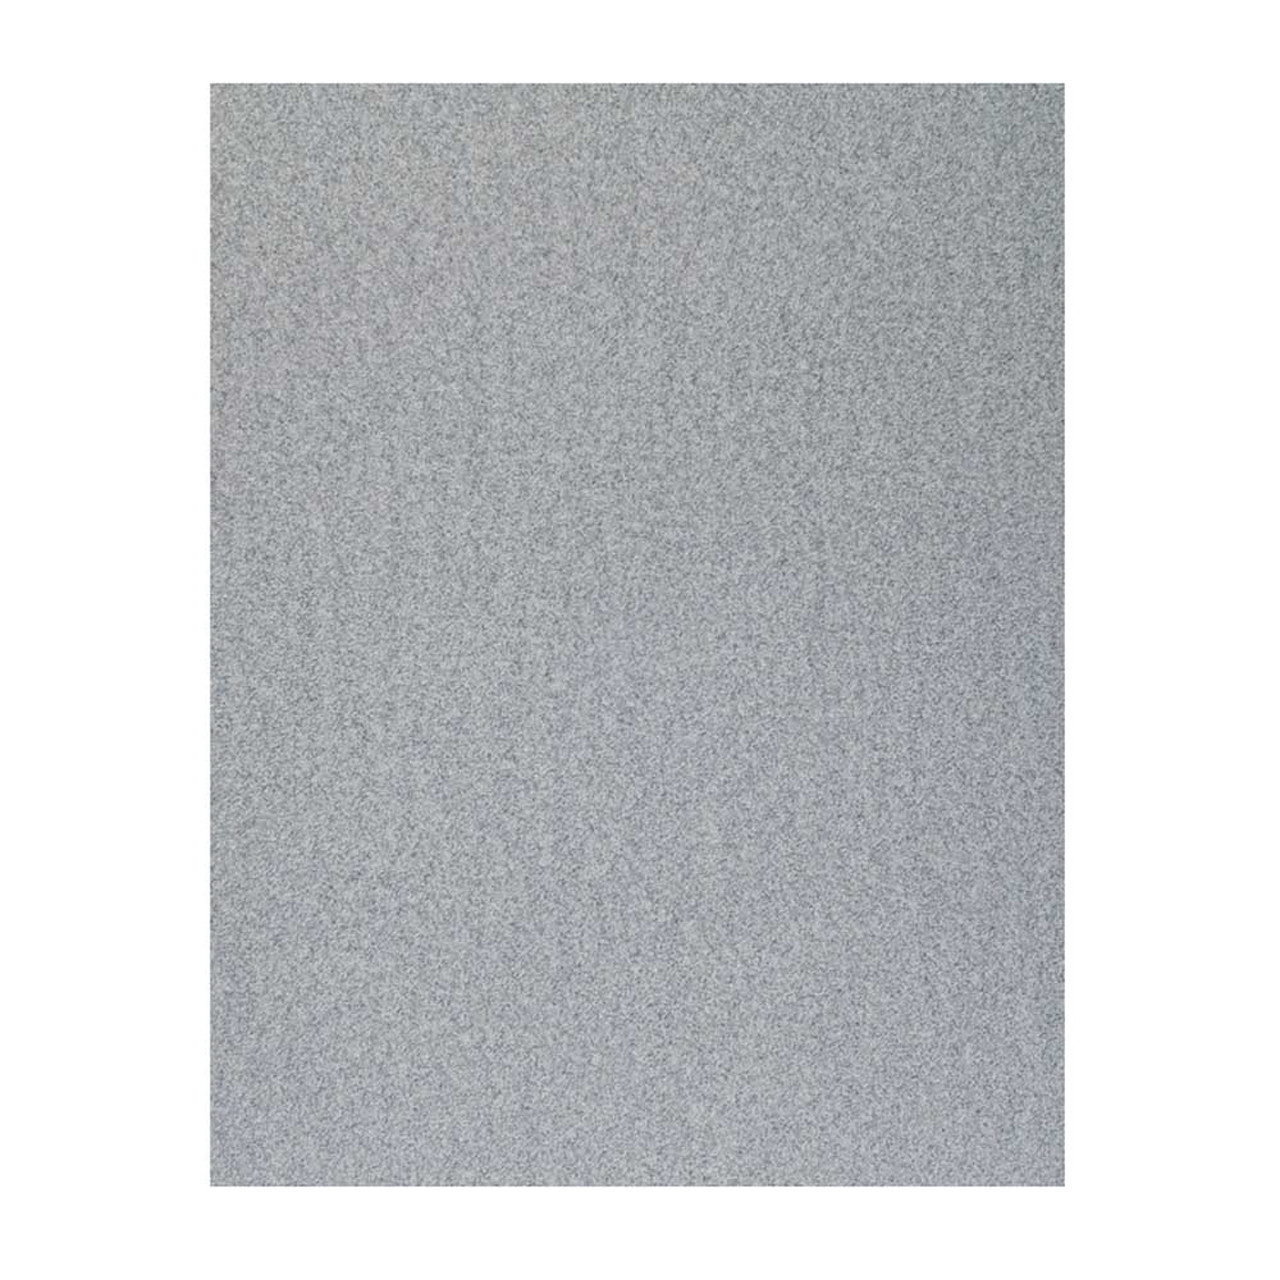 Norton 66254487399 9x11 In Durite Coated Paper Sheets